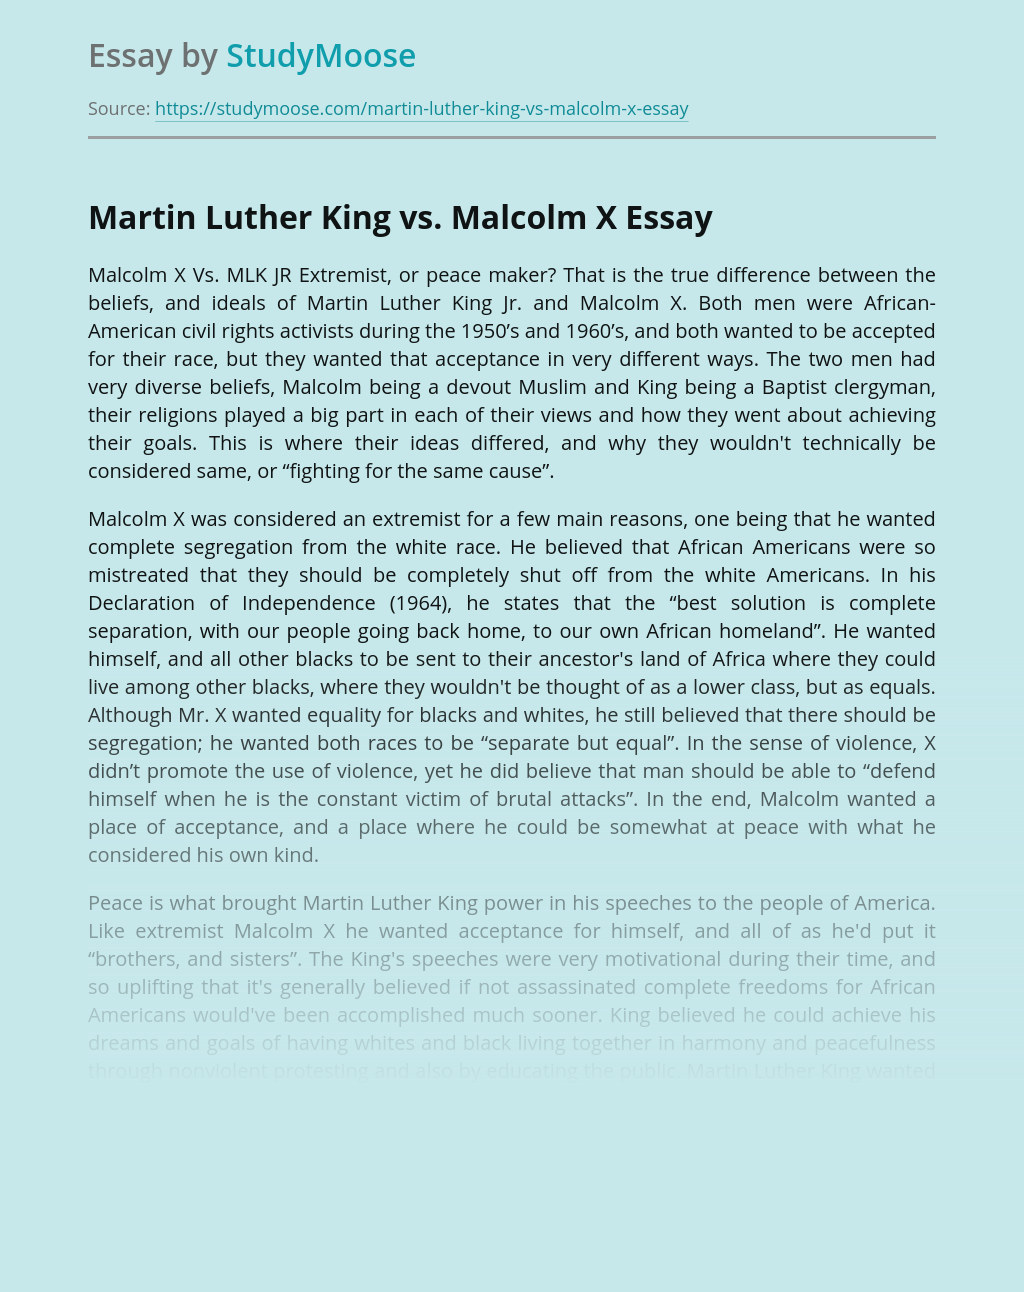 Martin Luther King vs. Malcolm X